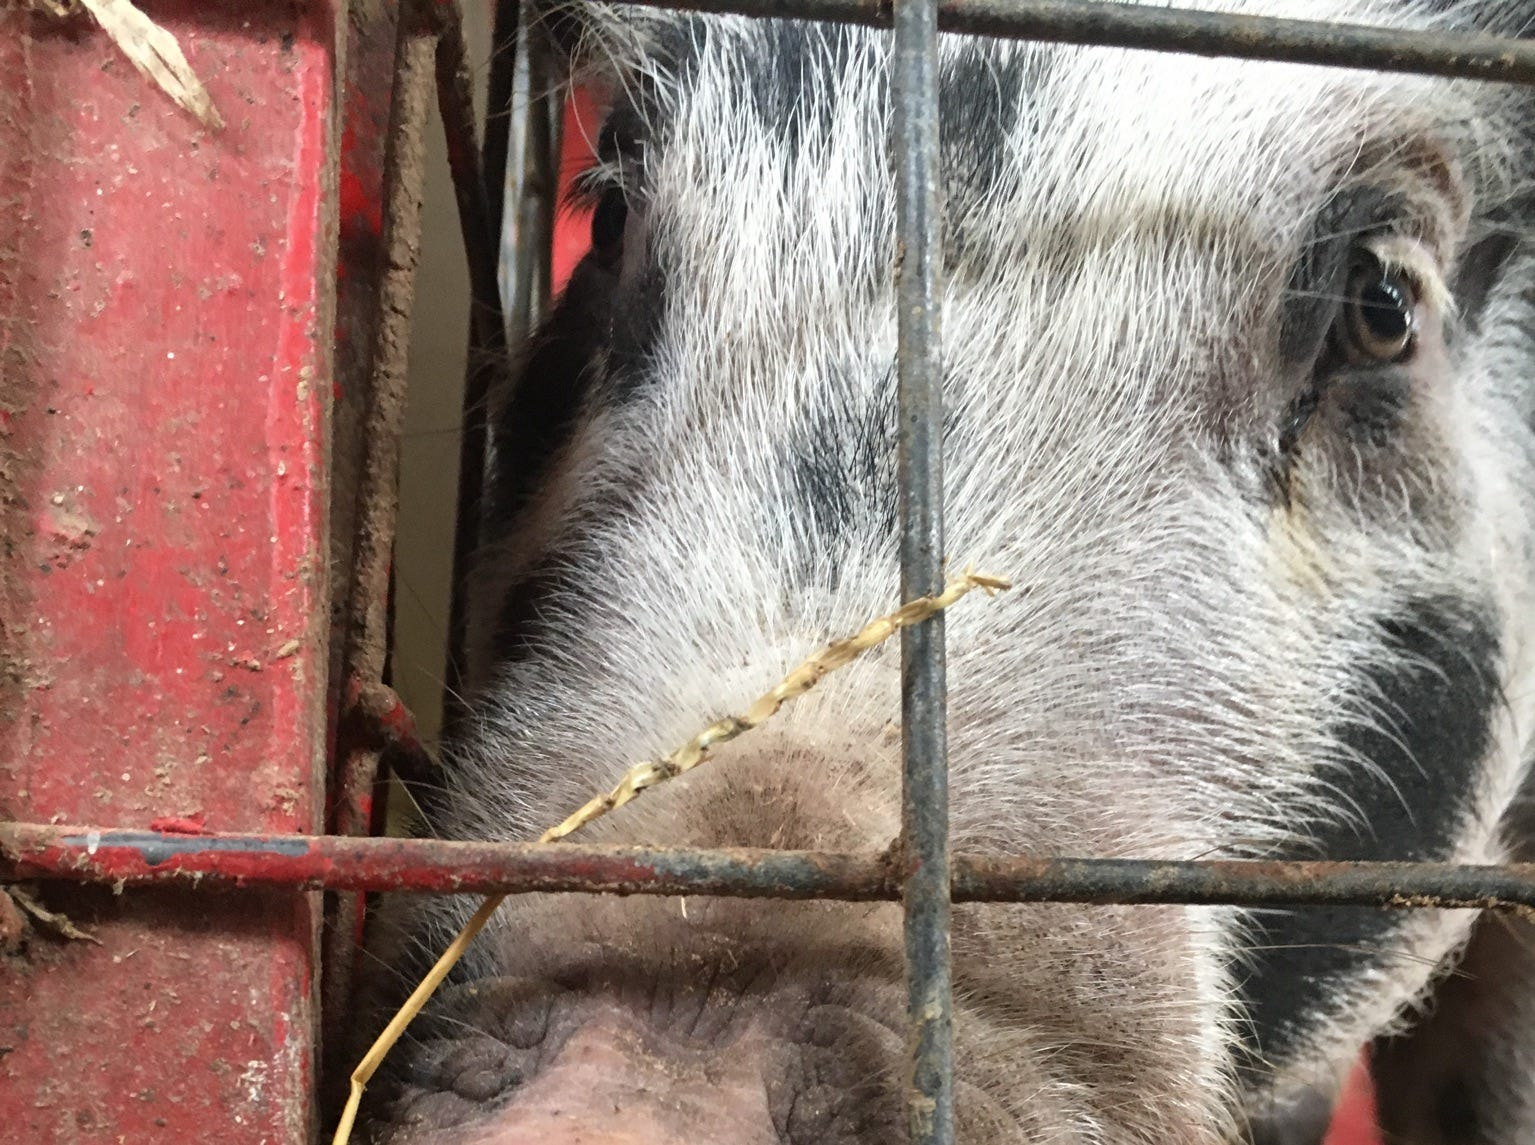 A pig noses its way to a treat at Young's Dairy in Yellow Springs, Ohio